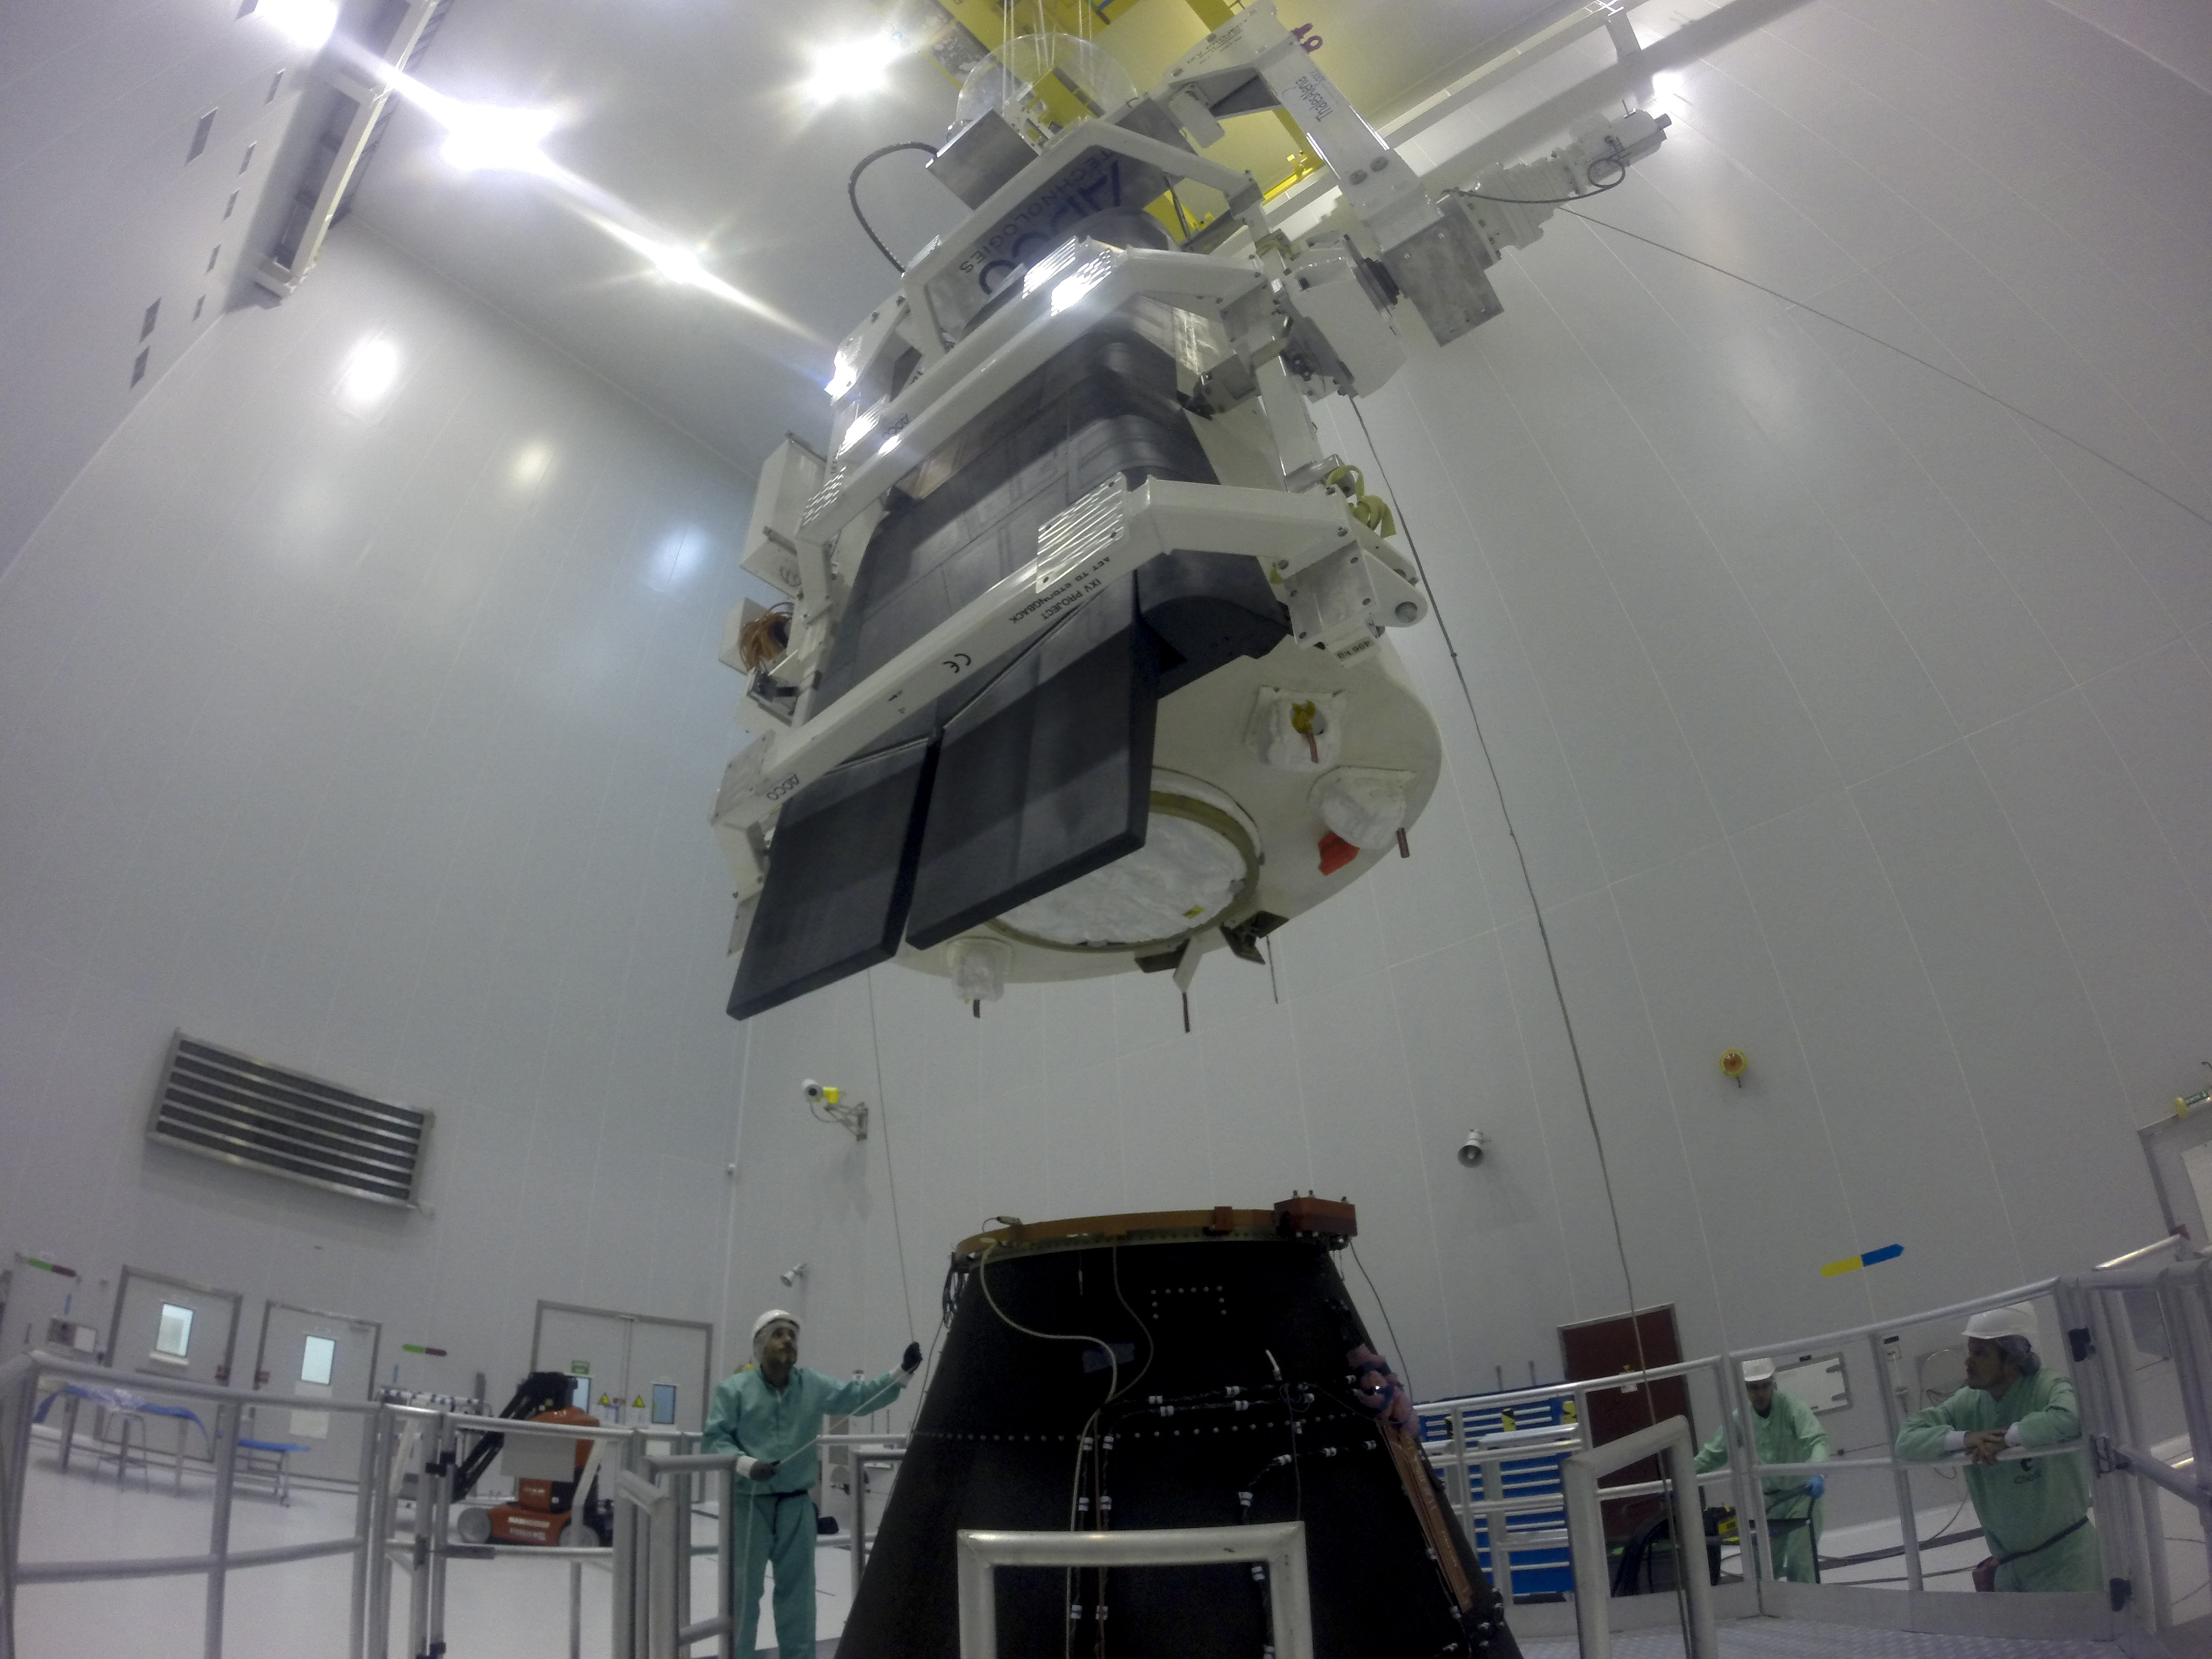 http://www.esa.int/var/esa/storage/images/esa_multimedia/images/2015/01/preparing_ixv_for_installation_on_its_payload_adapter/15210314-2-eng-GB/Preparing_IXV_for_installation_on_its_payload_adapter.jpg